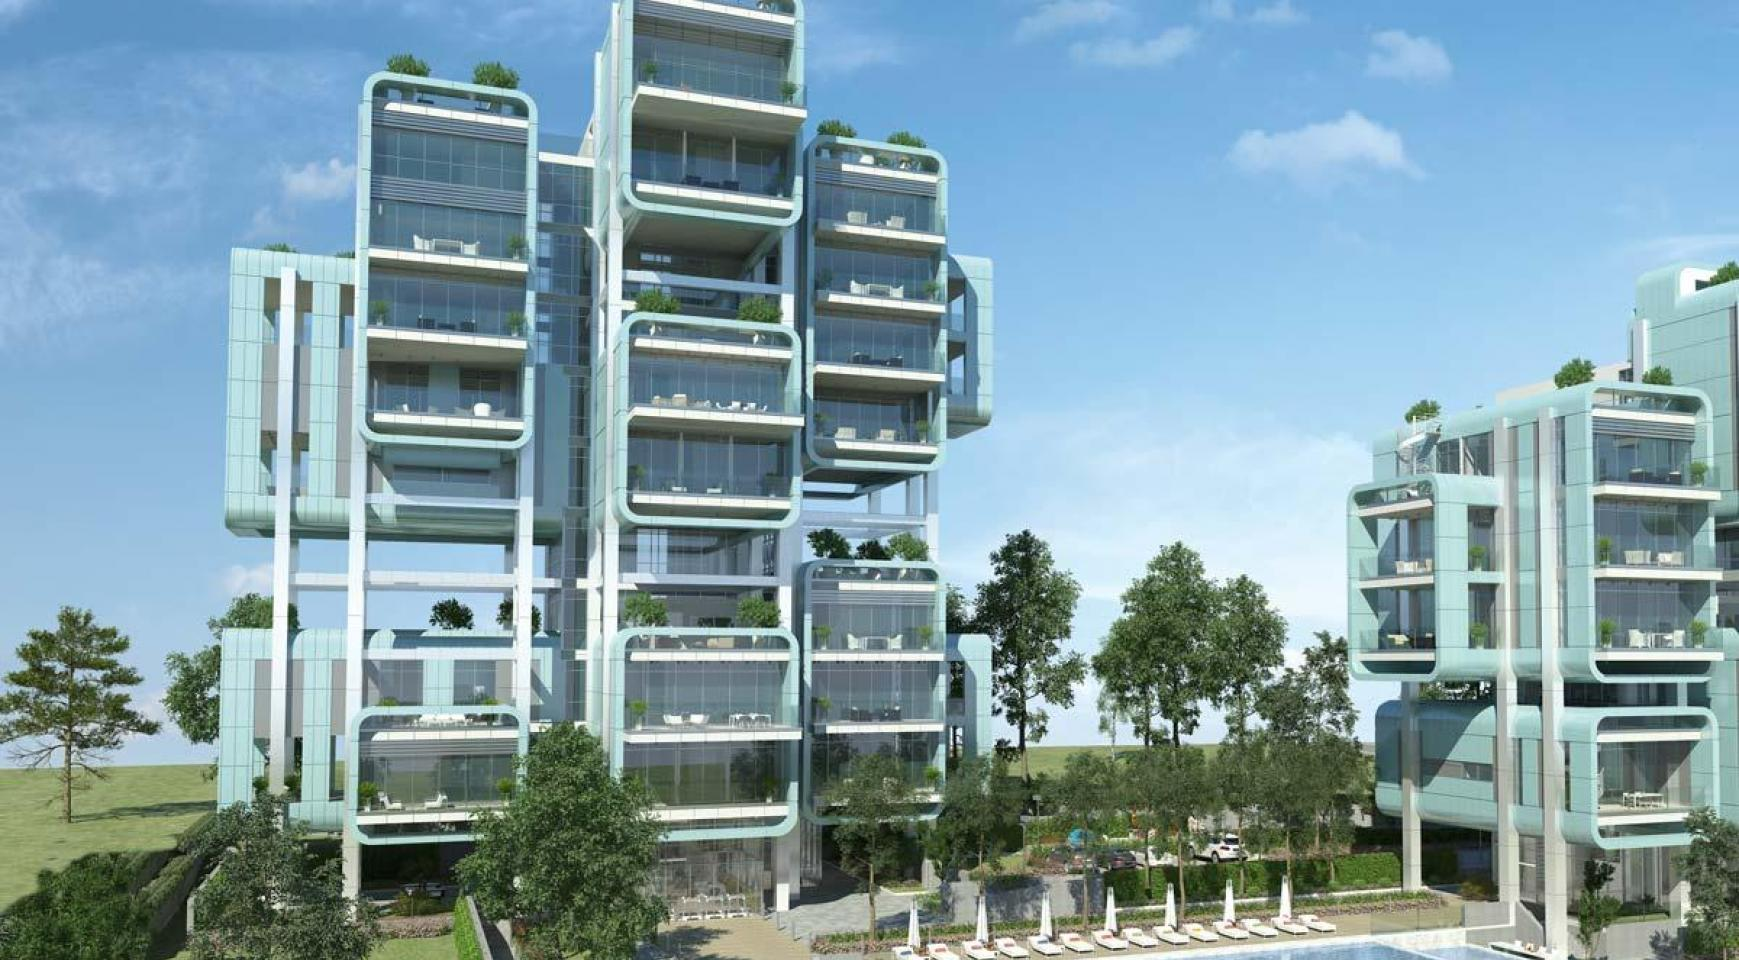 Elite 3 Bedroom Apartment within a New Complex near the Sea - 32